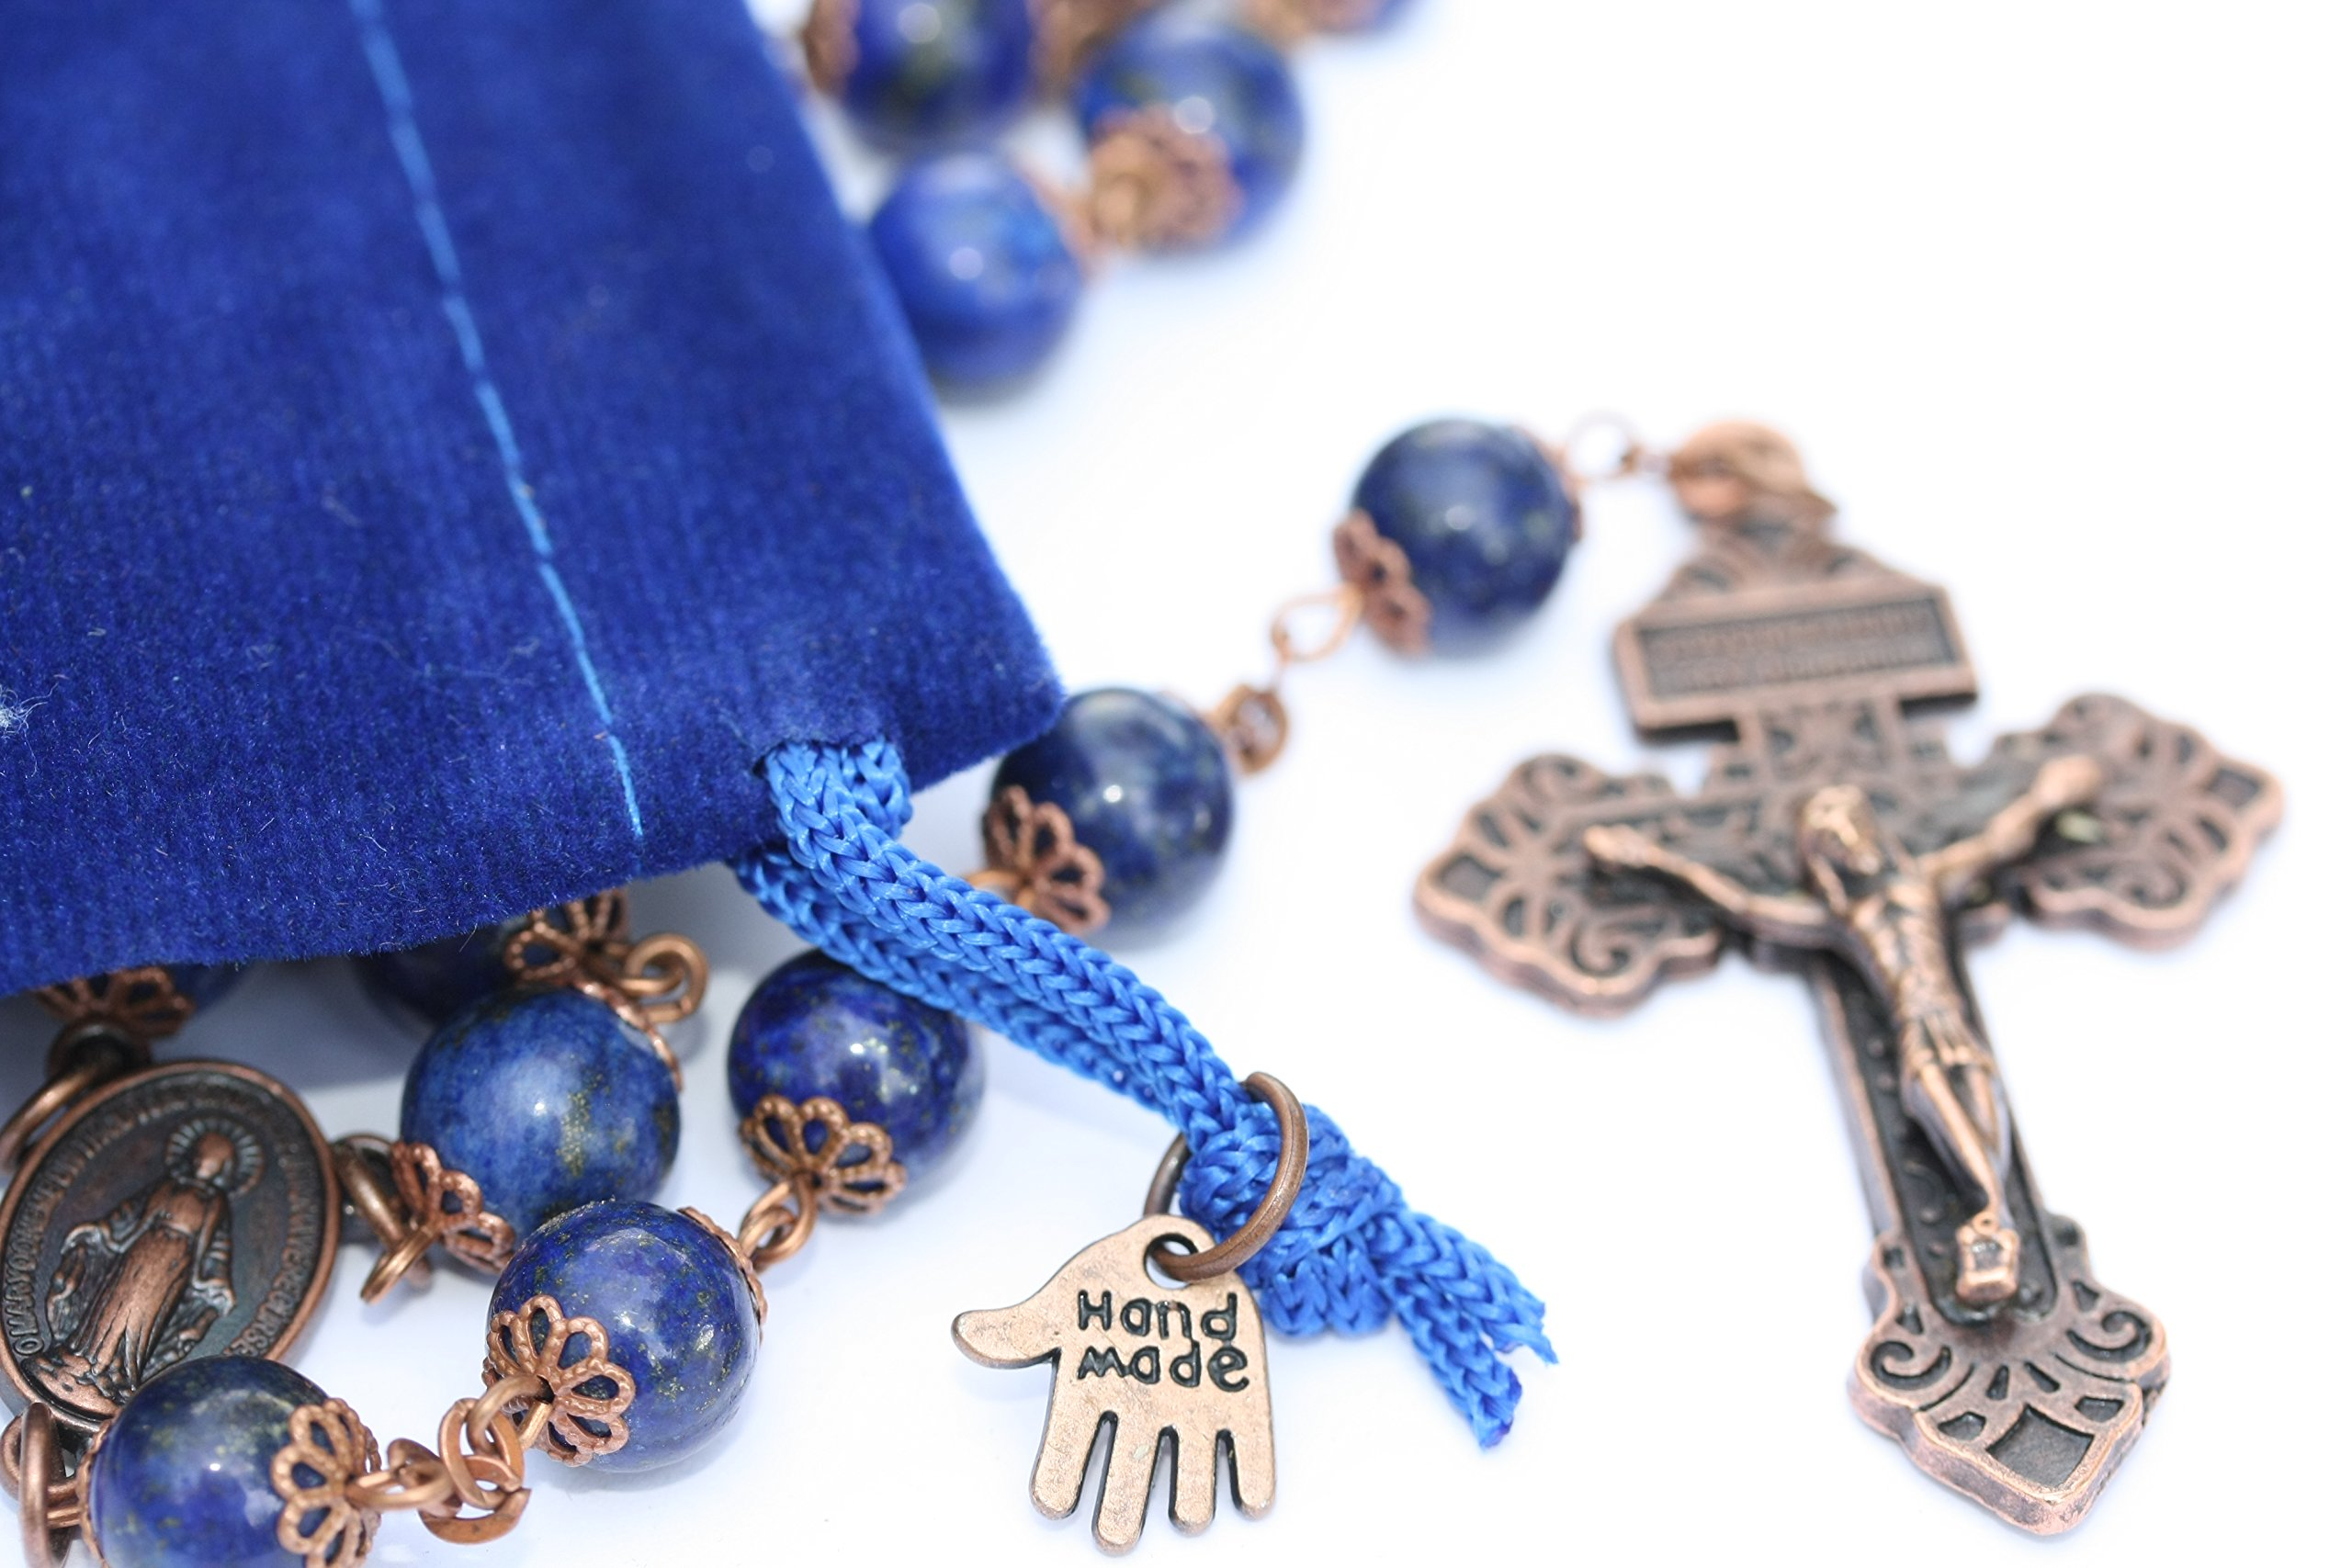 Large Genuine Lapis and Copper 10mm 5 Decade Natural Stone Bead Rosary Made in Oklahoma by Oklahoma Rosaries (Image #3)